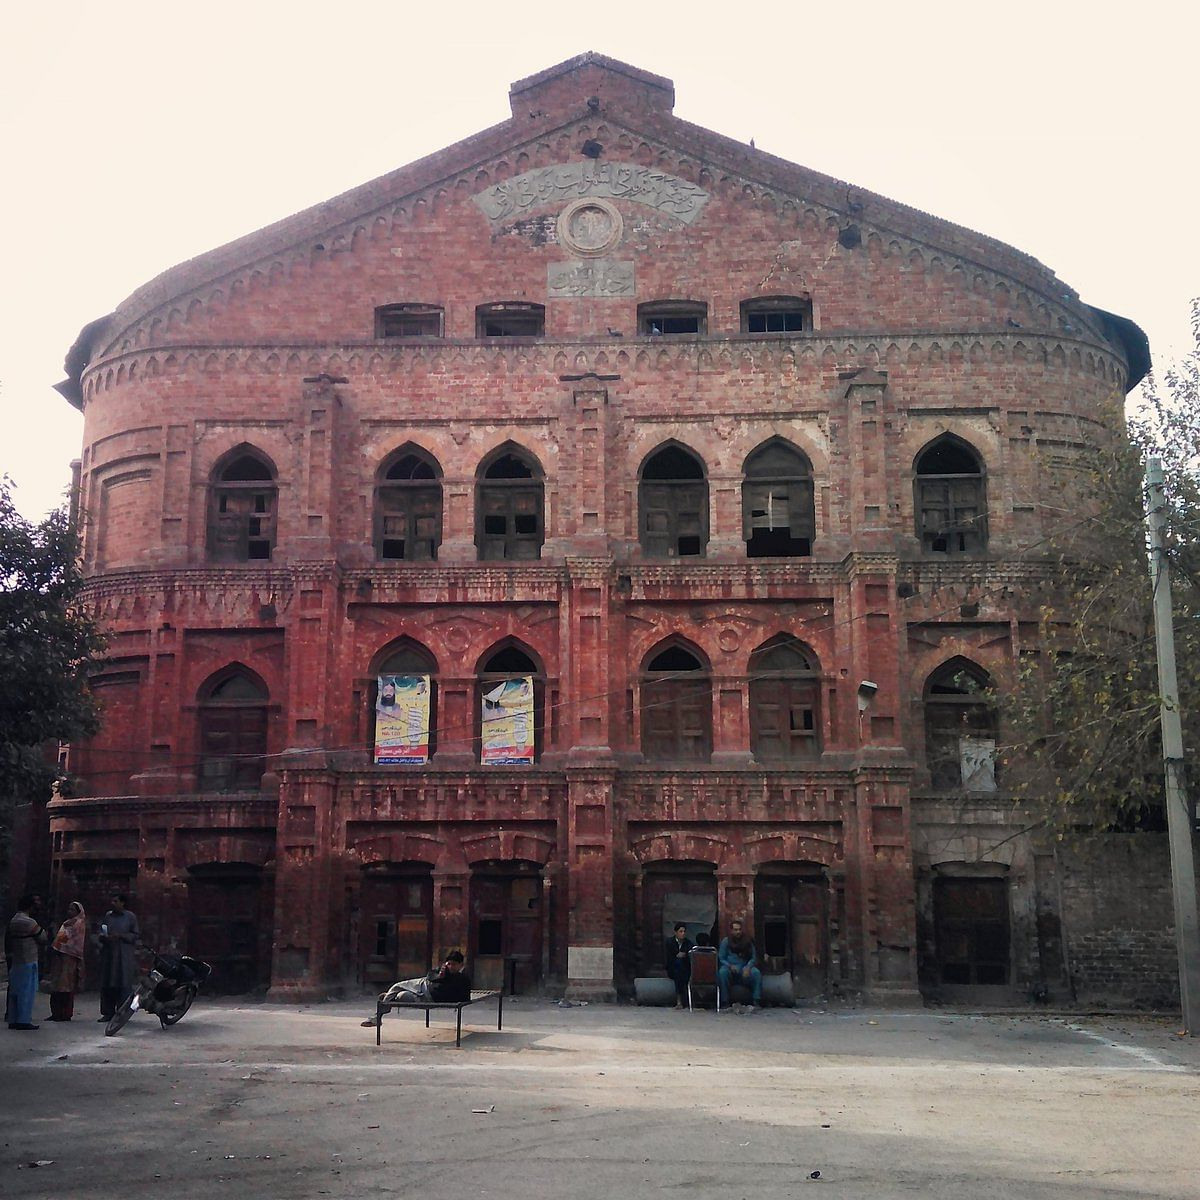 Bradlaugh Hall in Lahore, which housed the National College founded by Lala Lajpat Rai